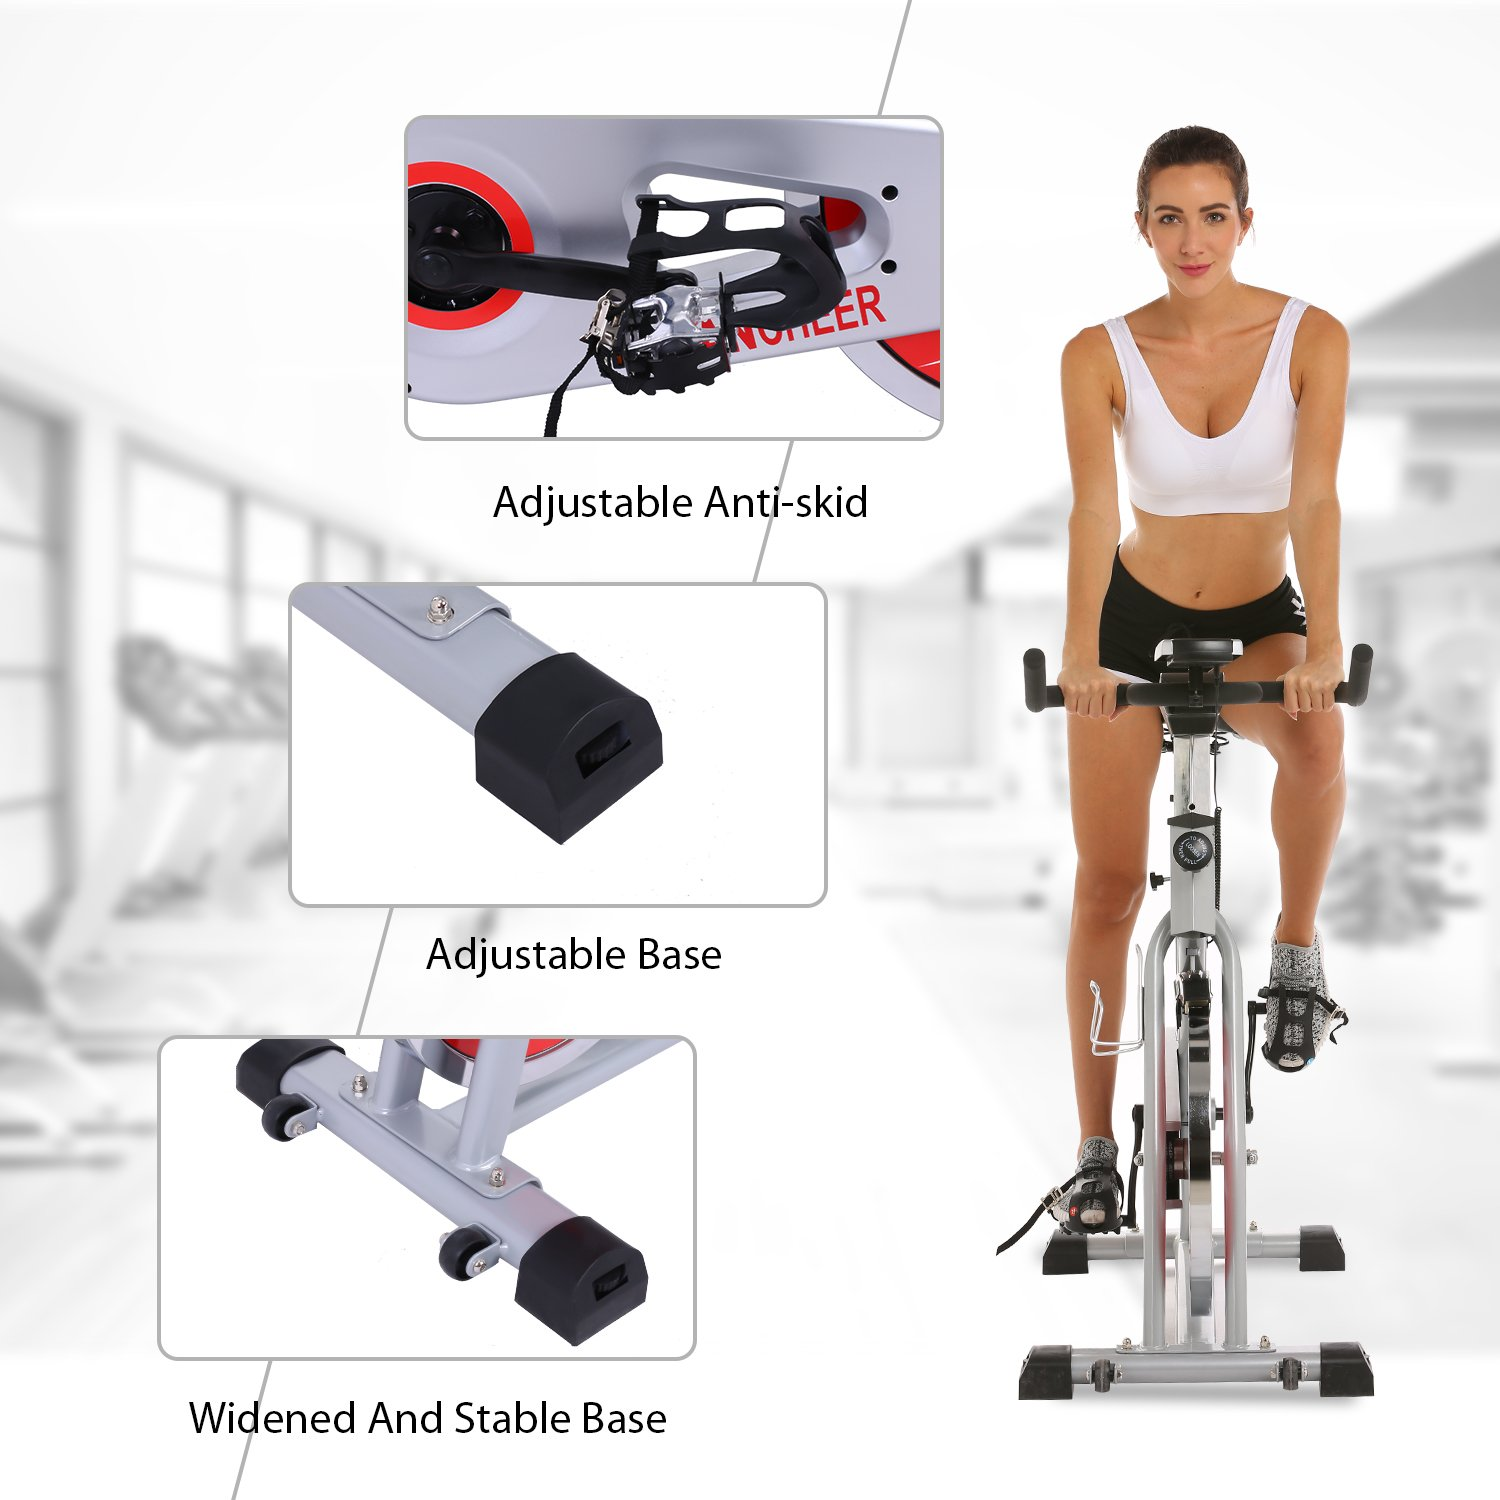 ANCHEER Indoor Cycling Bike, Belt Drive Indoor Exercise Bike with 49LBS Flywheel (Sliver) by ANCHEER (Image #8)